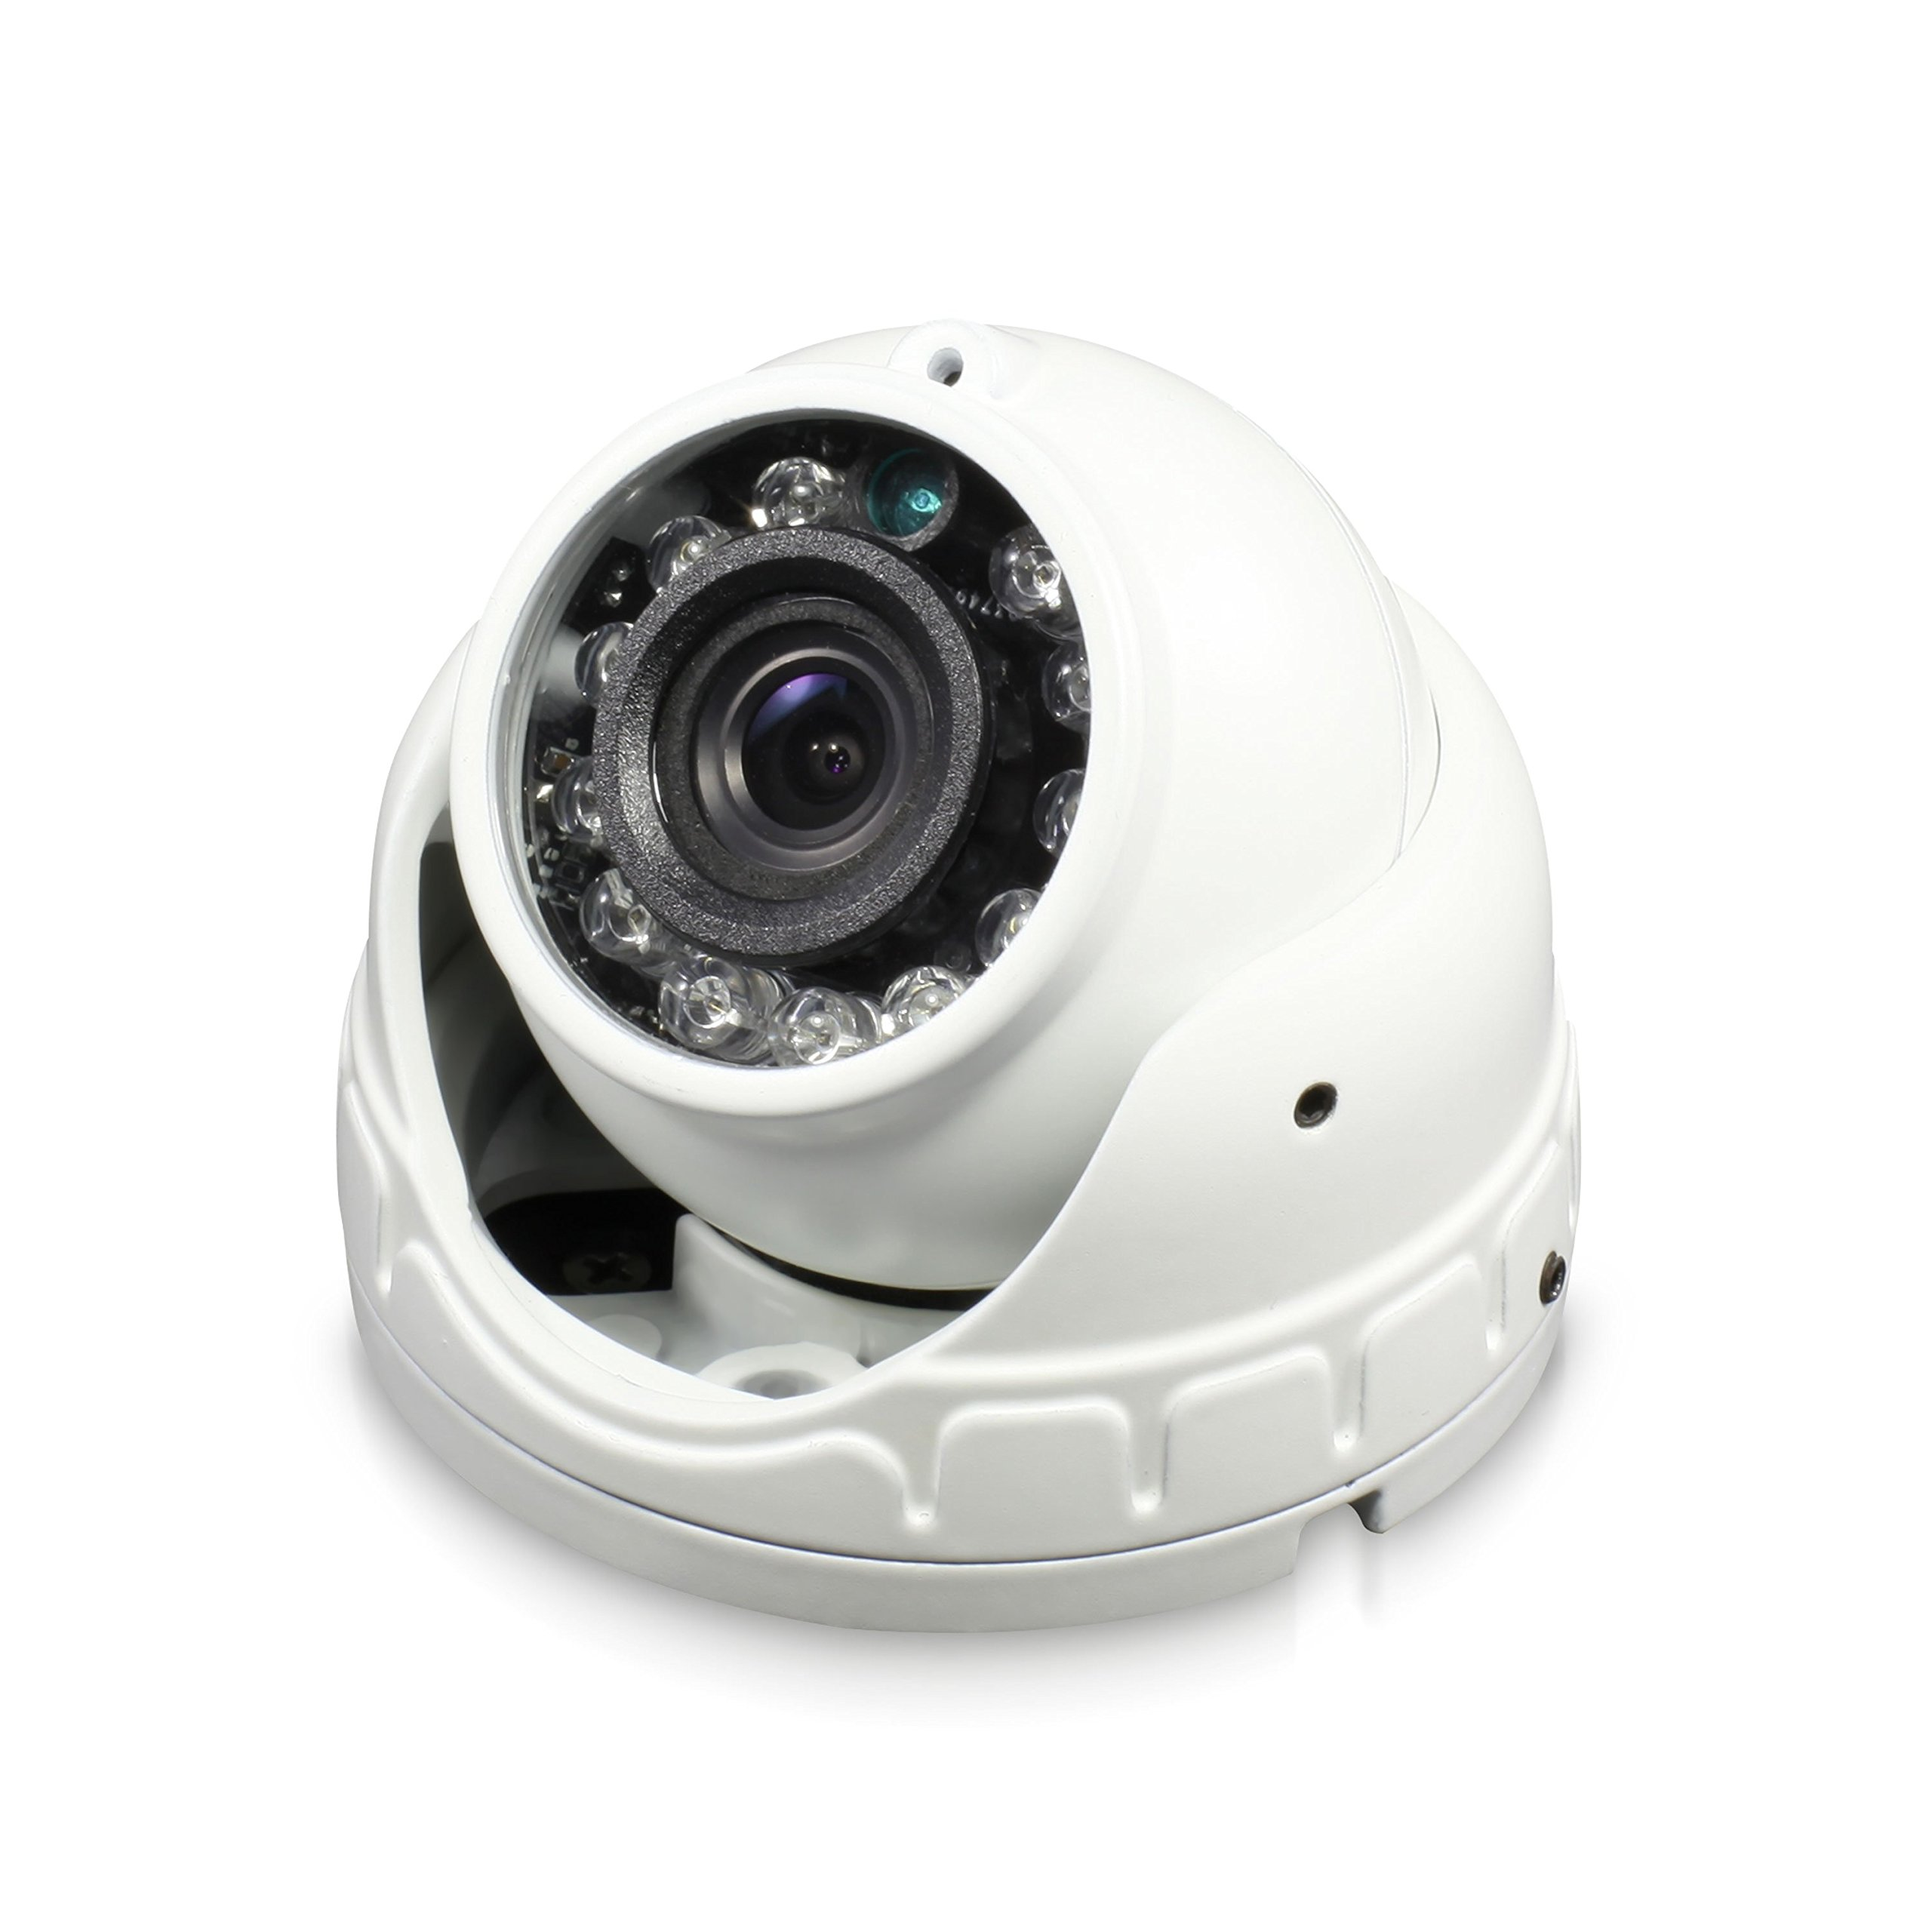 Swann Pro HD Dome Camera, White (SWPRO-1080FLD-US) by Swann